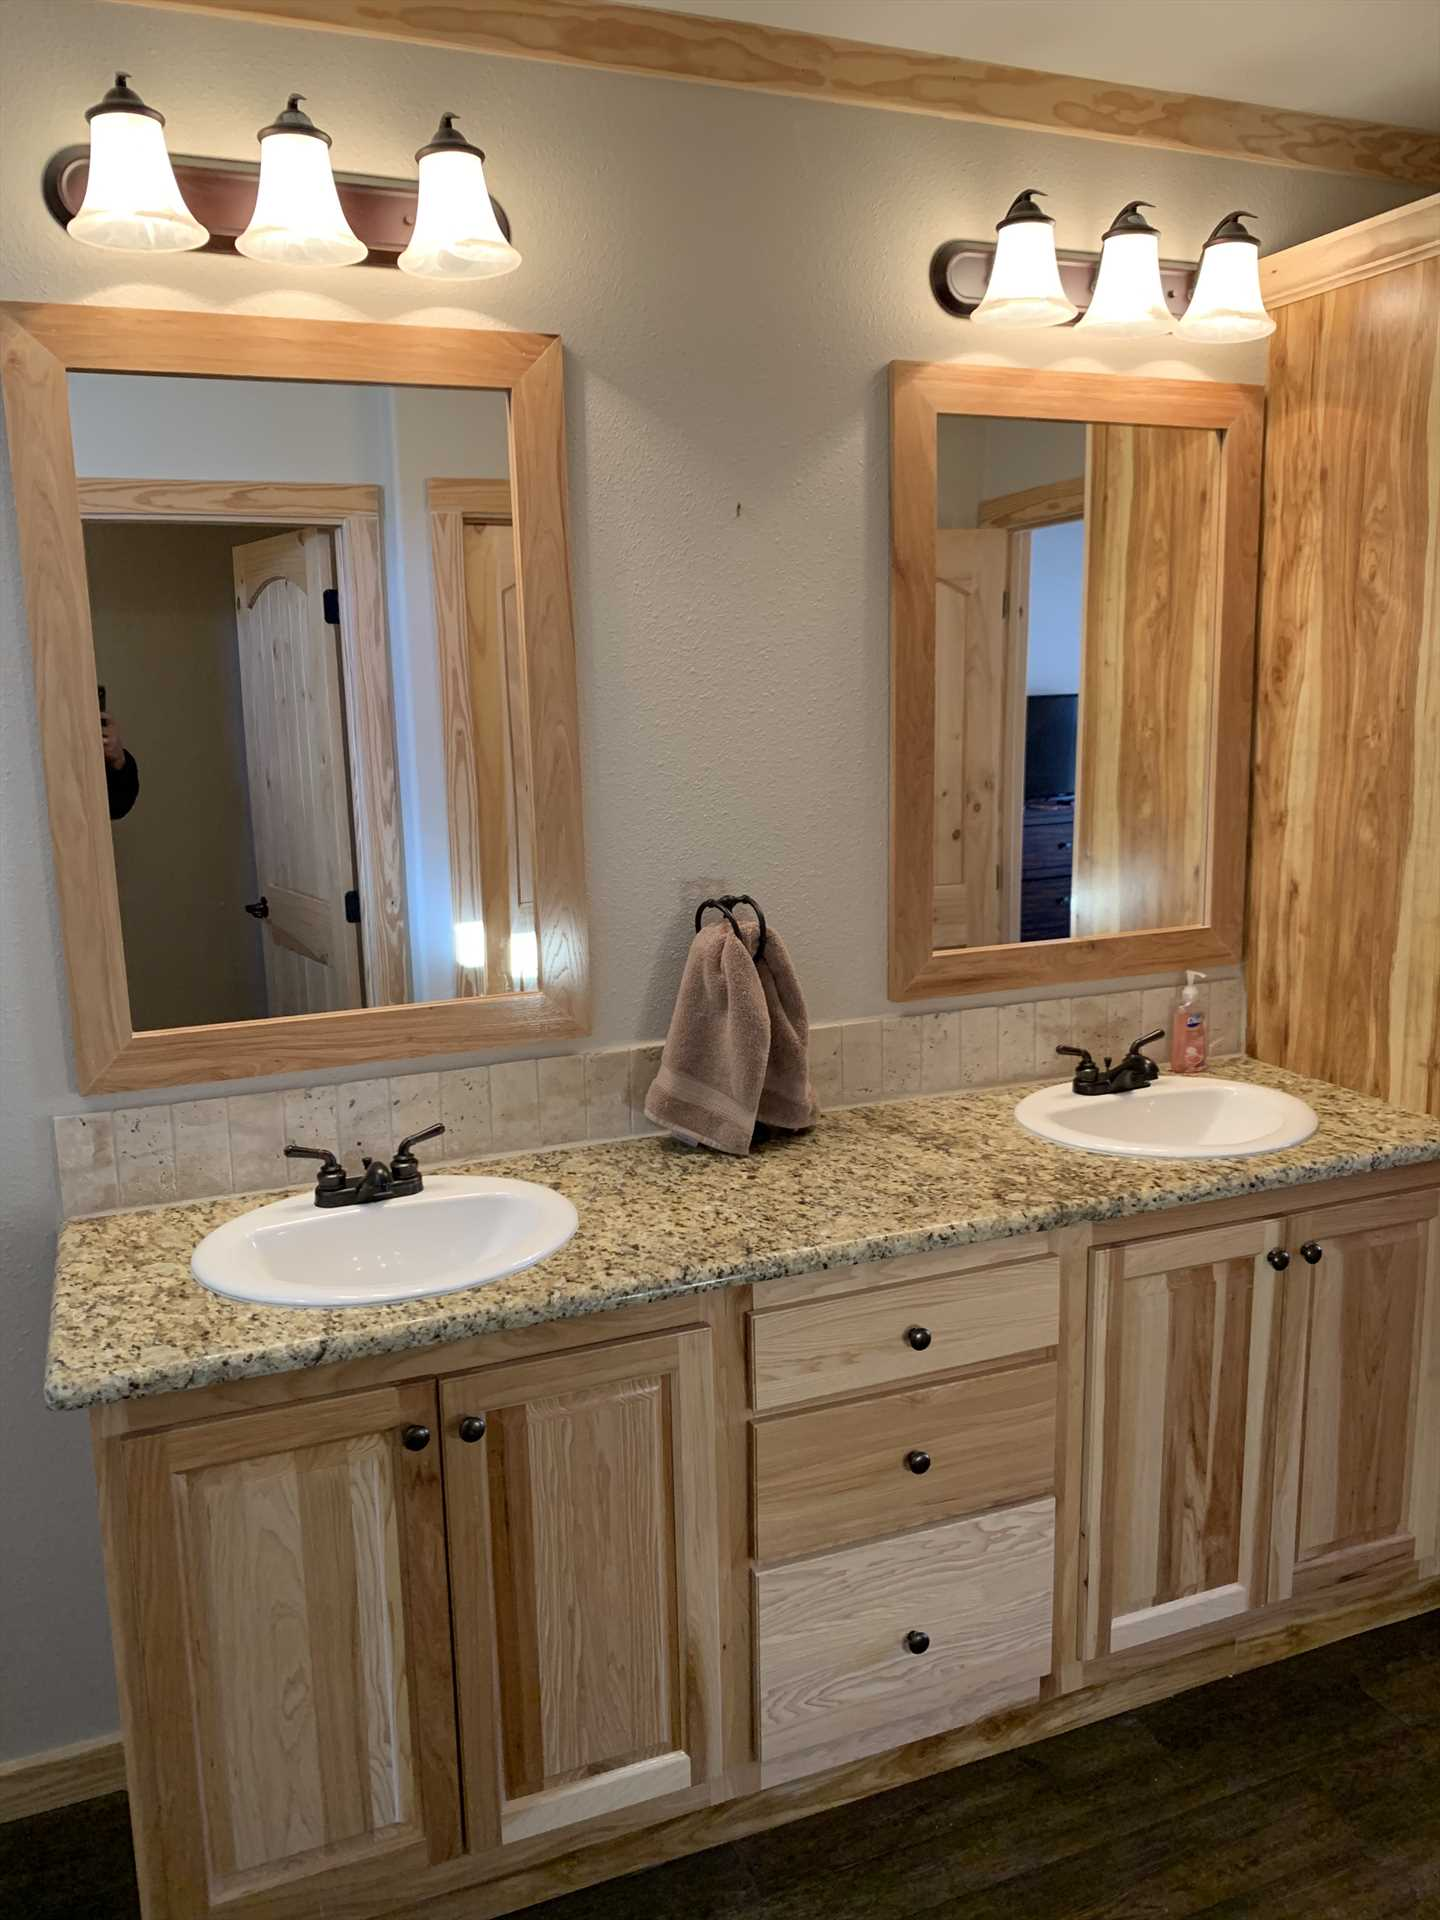 Plenty of counter space between the master bath's twin vanities mean you won't have to live out of a suitcase!